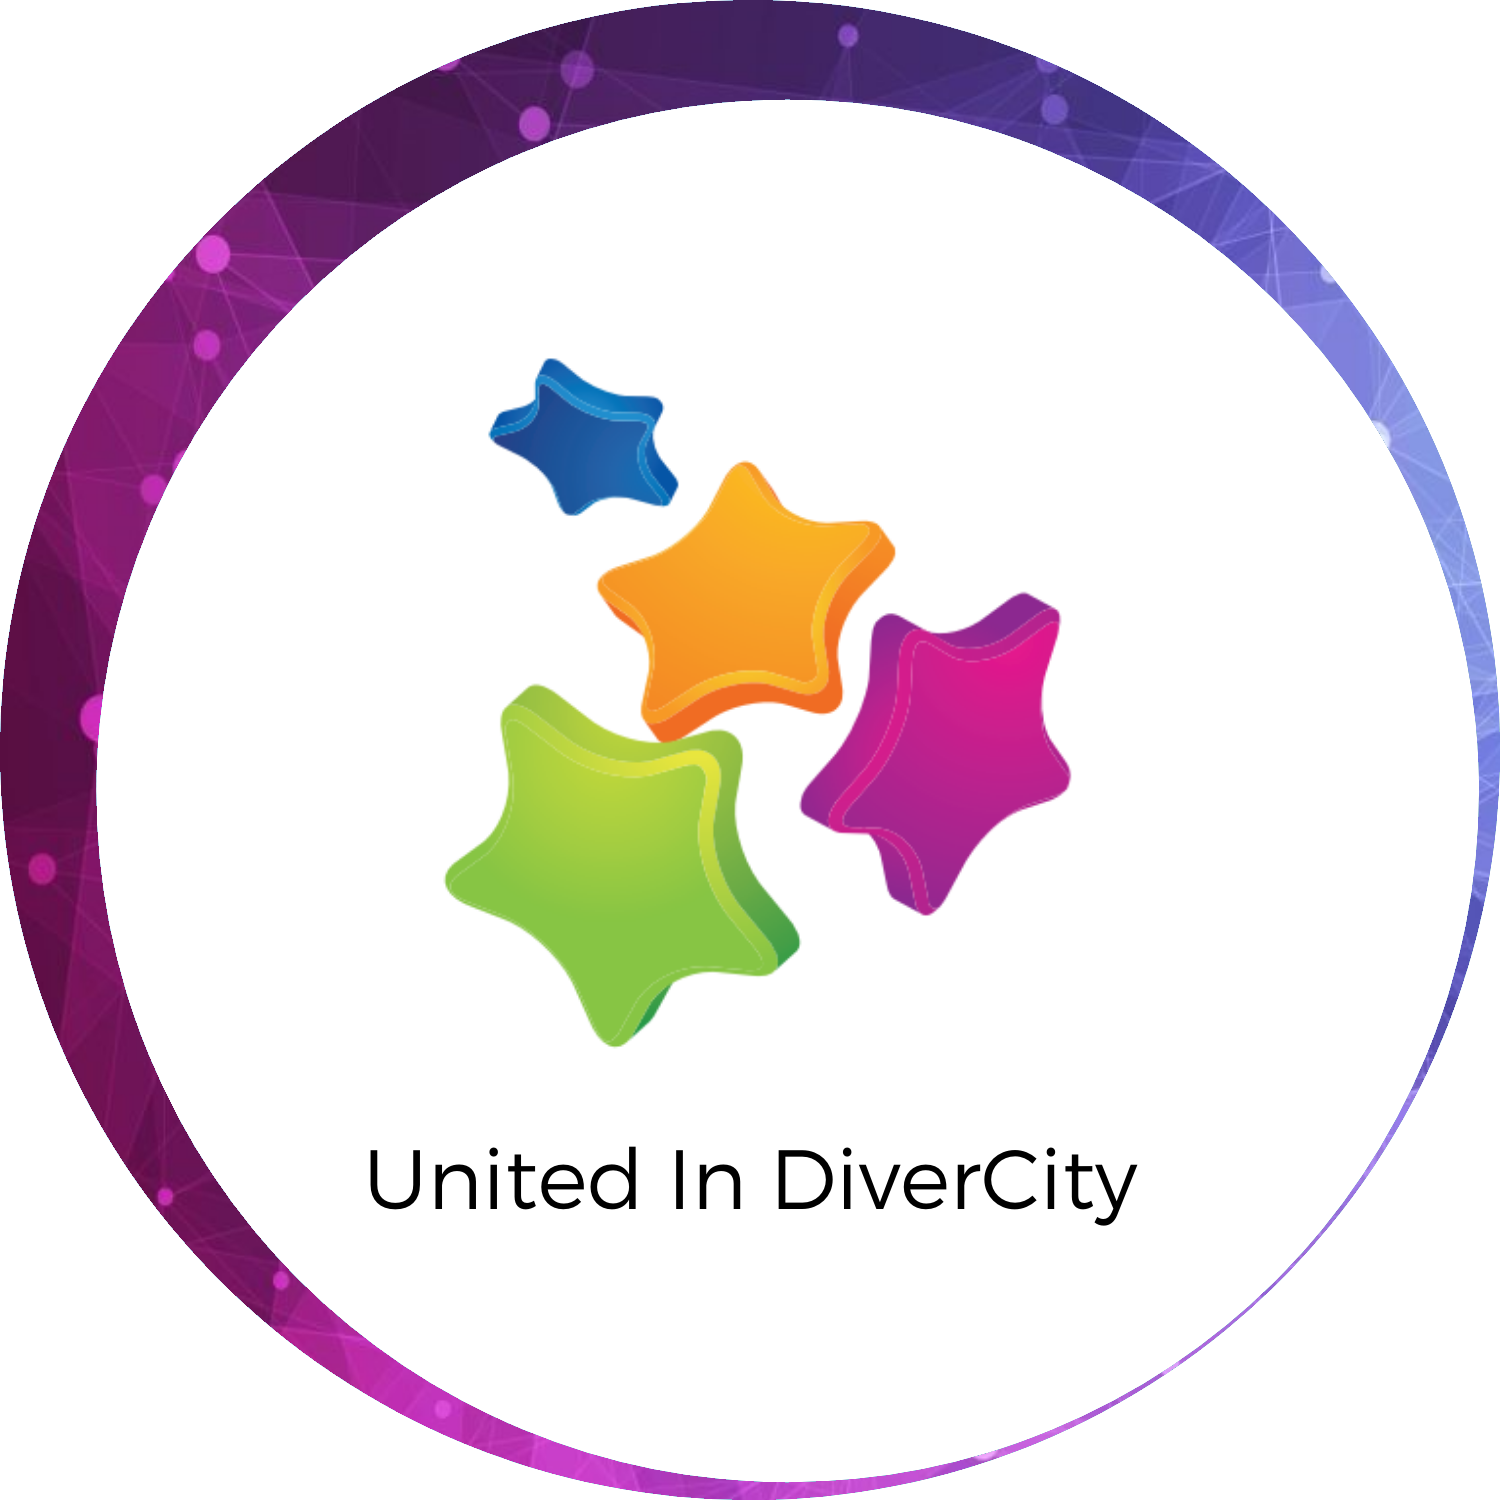 United in DiverCity